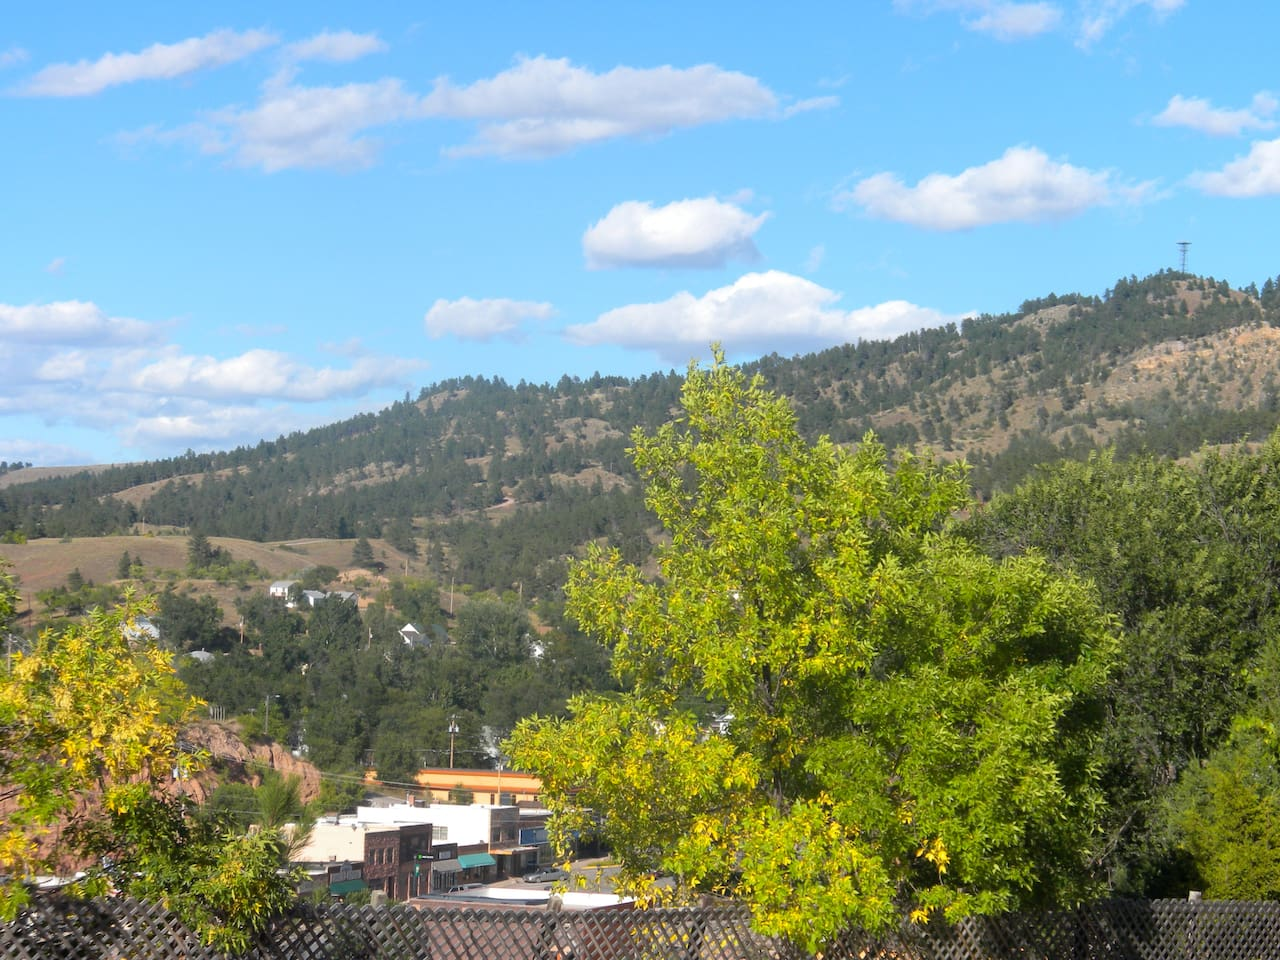 View of Battle Mountain from Carriage House